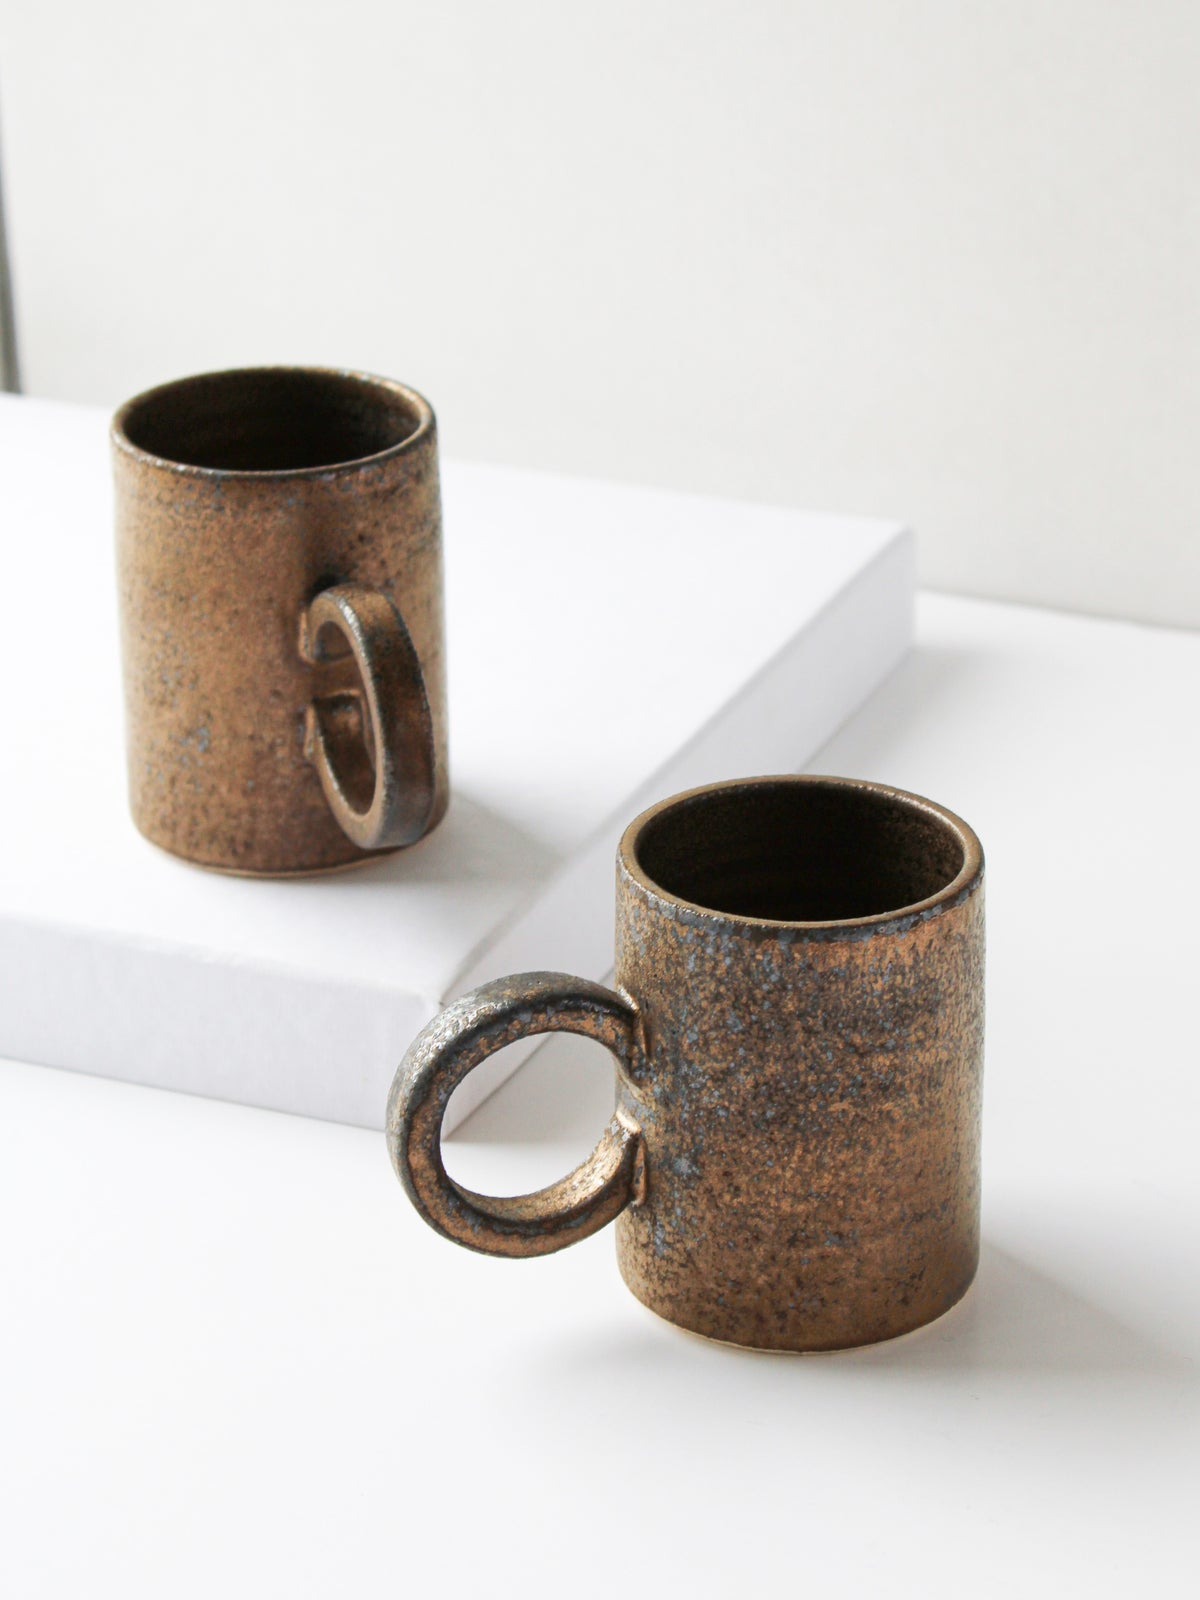 Image of espresso mug in gold